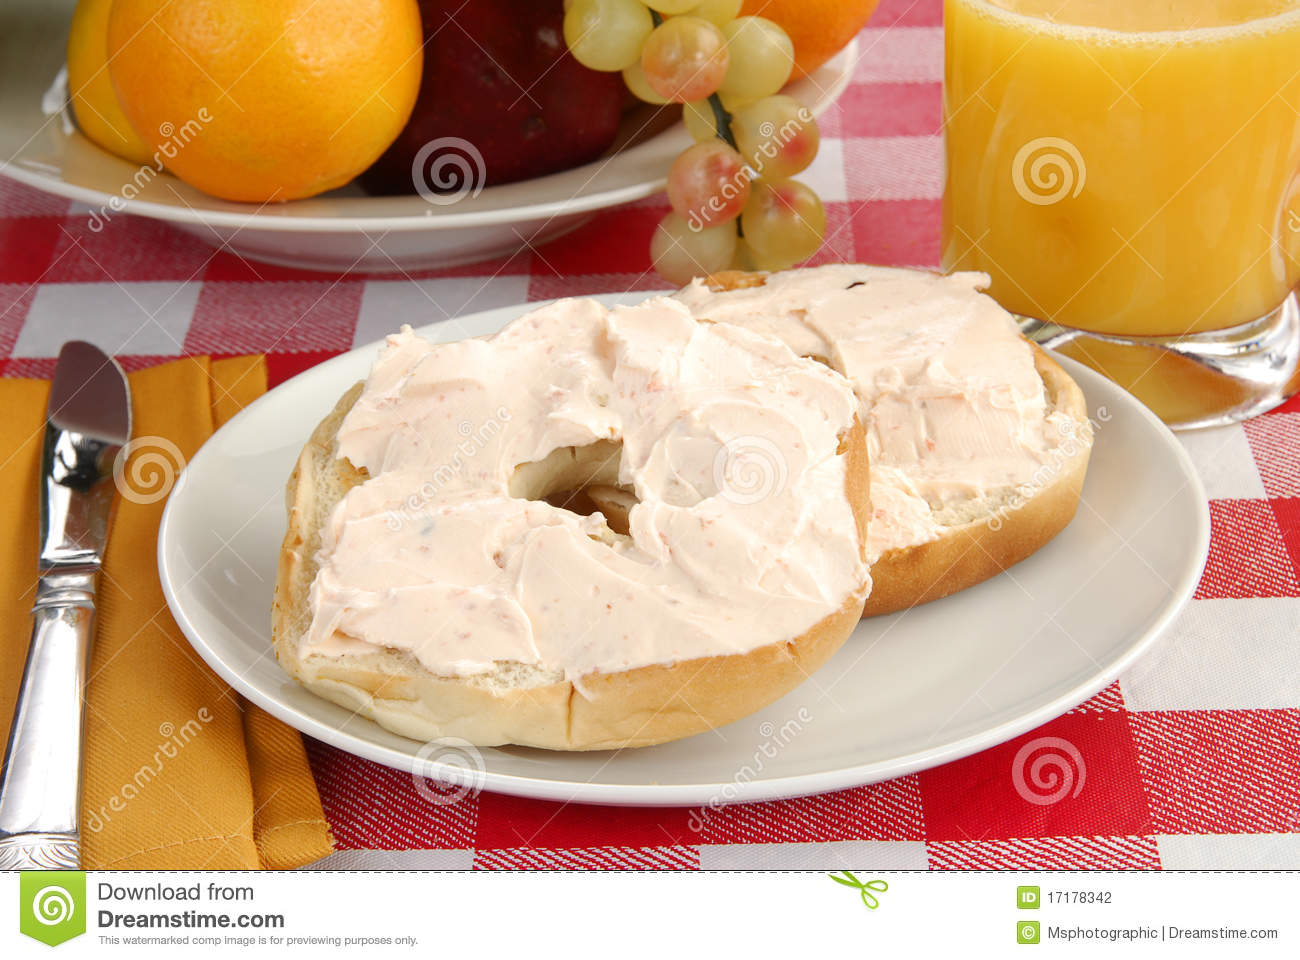 Bagel And Cream Cheese Stock Photo. Image Of Toasted